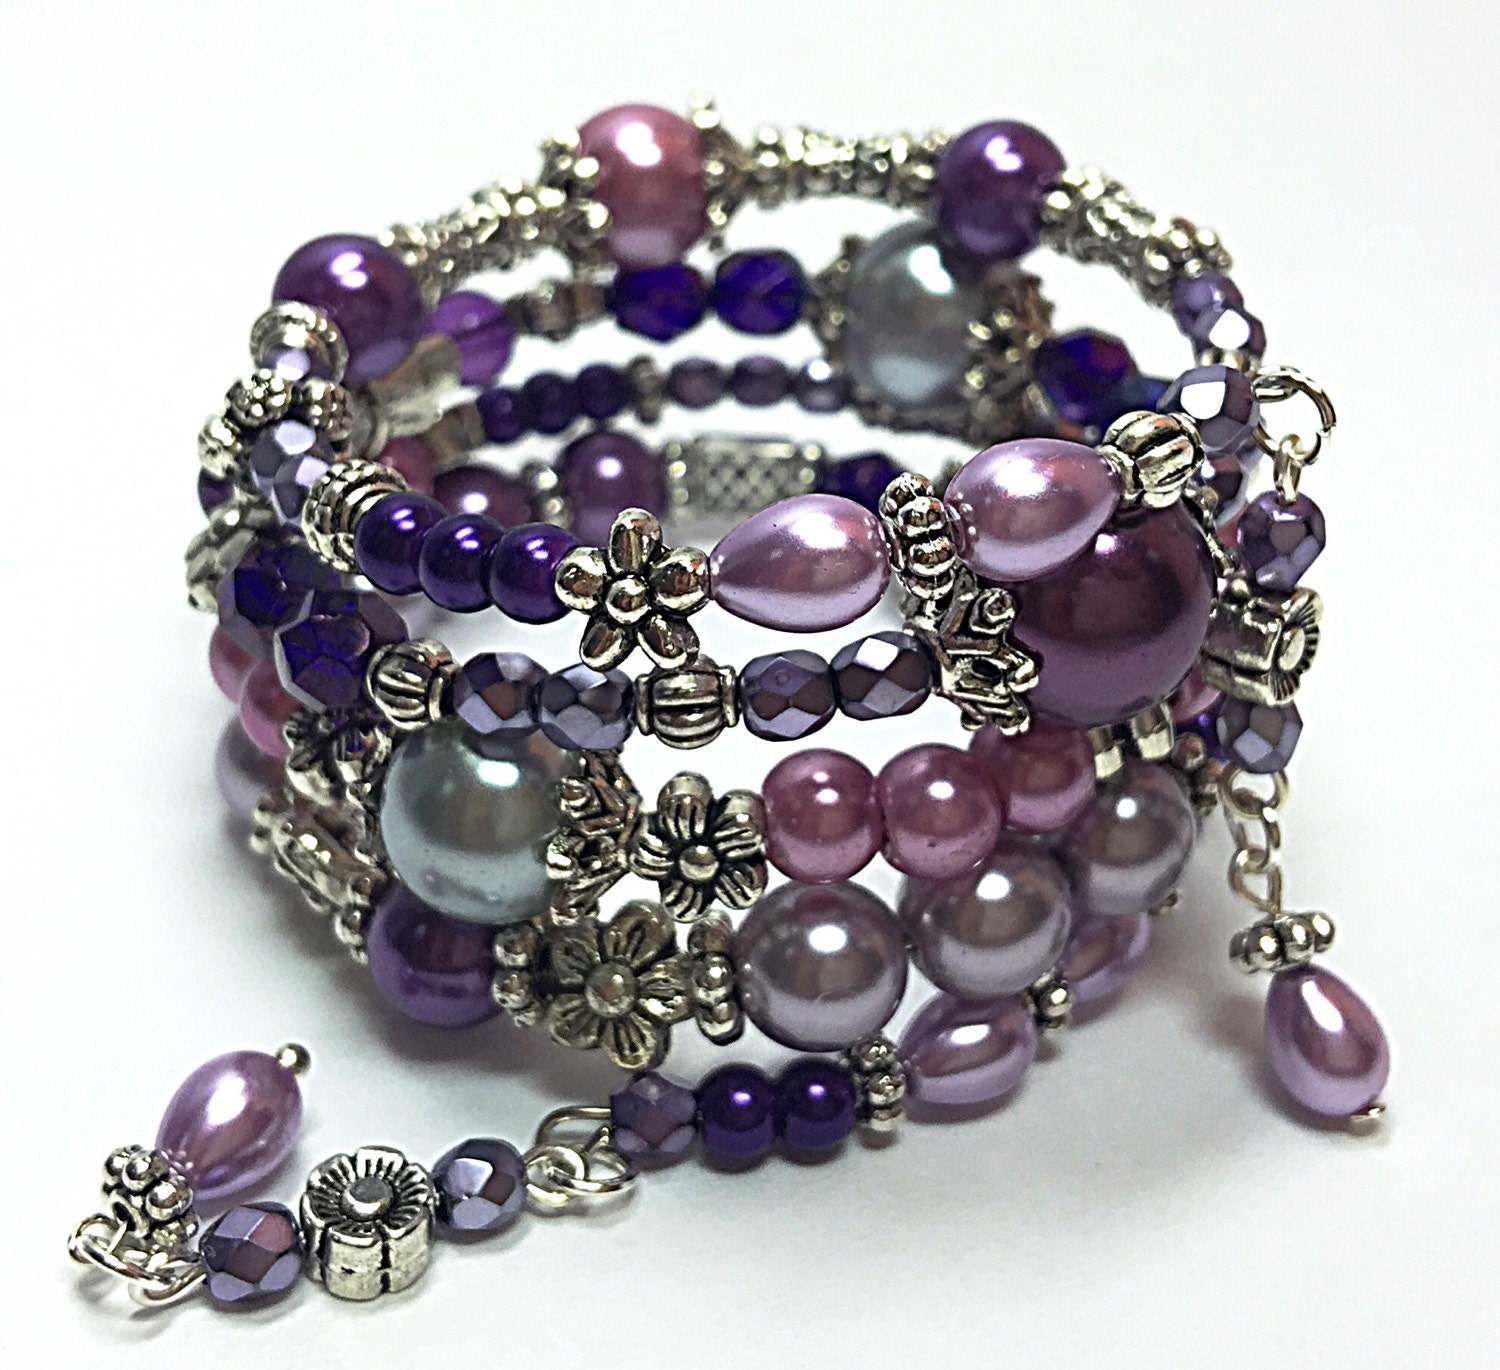 Bead Charms For Bracelets: Purple Wrap Bracelet Beaded Memory Wire Bracelet Bohemian